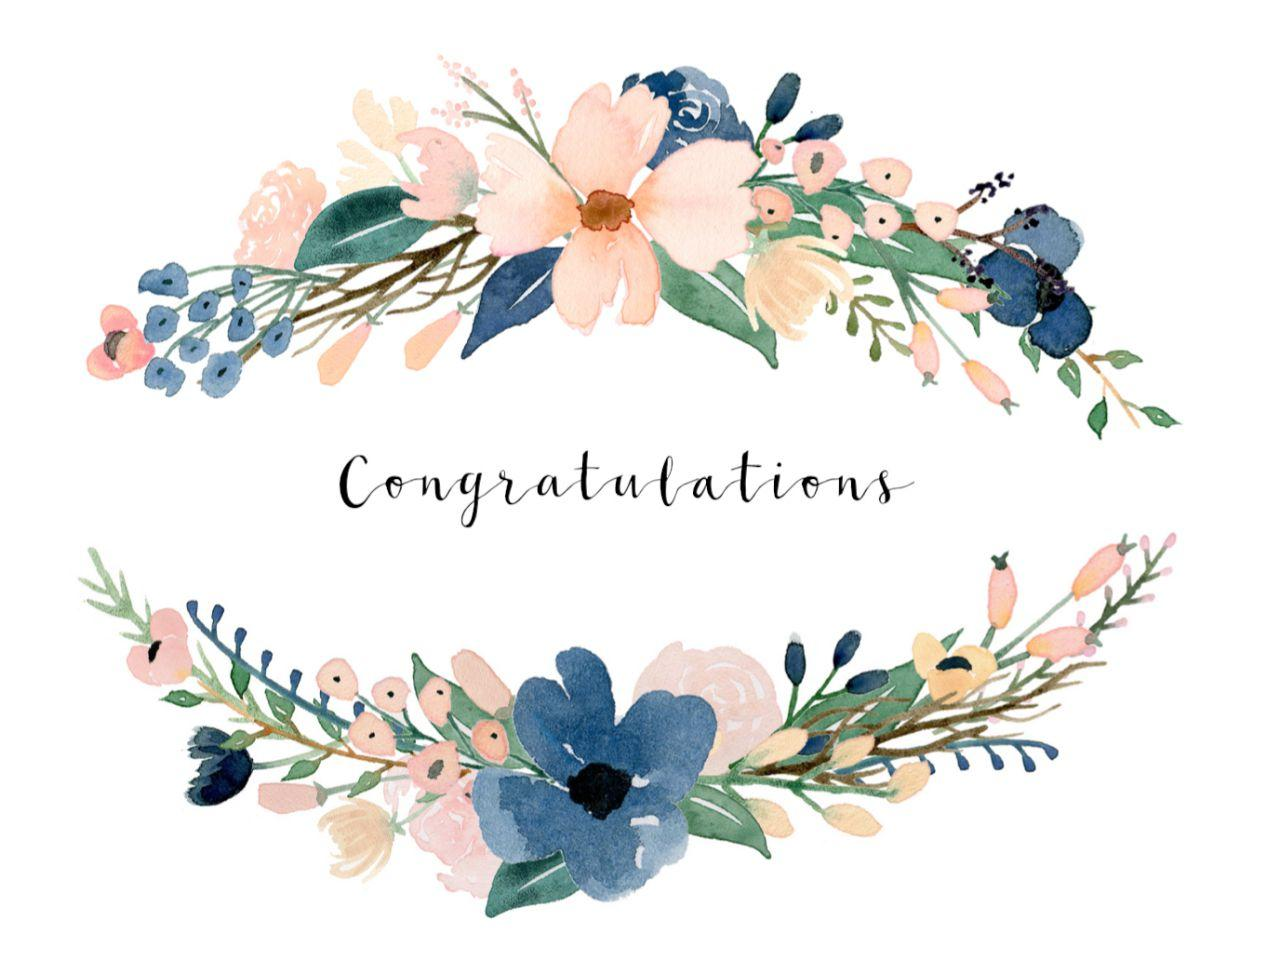 Congratulations images with flowers clipart clipart royalty free library Watercolor Flower Card Congratulations Images clipart royalty free library